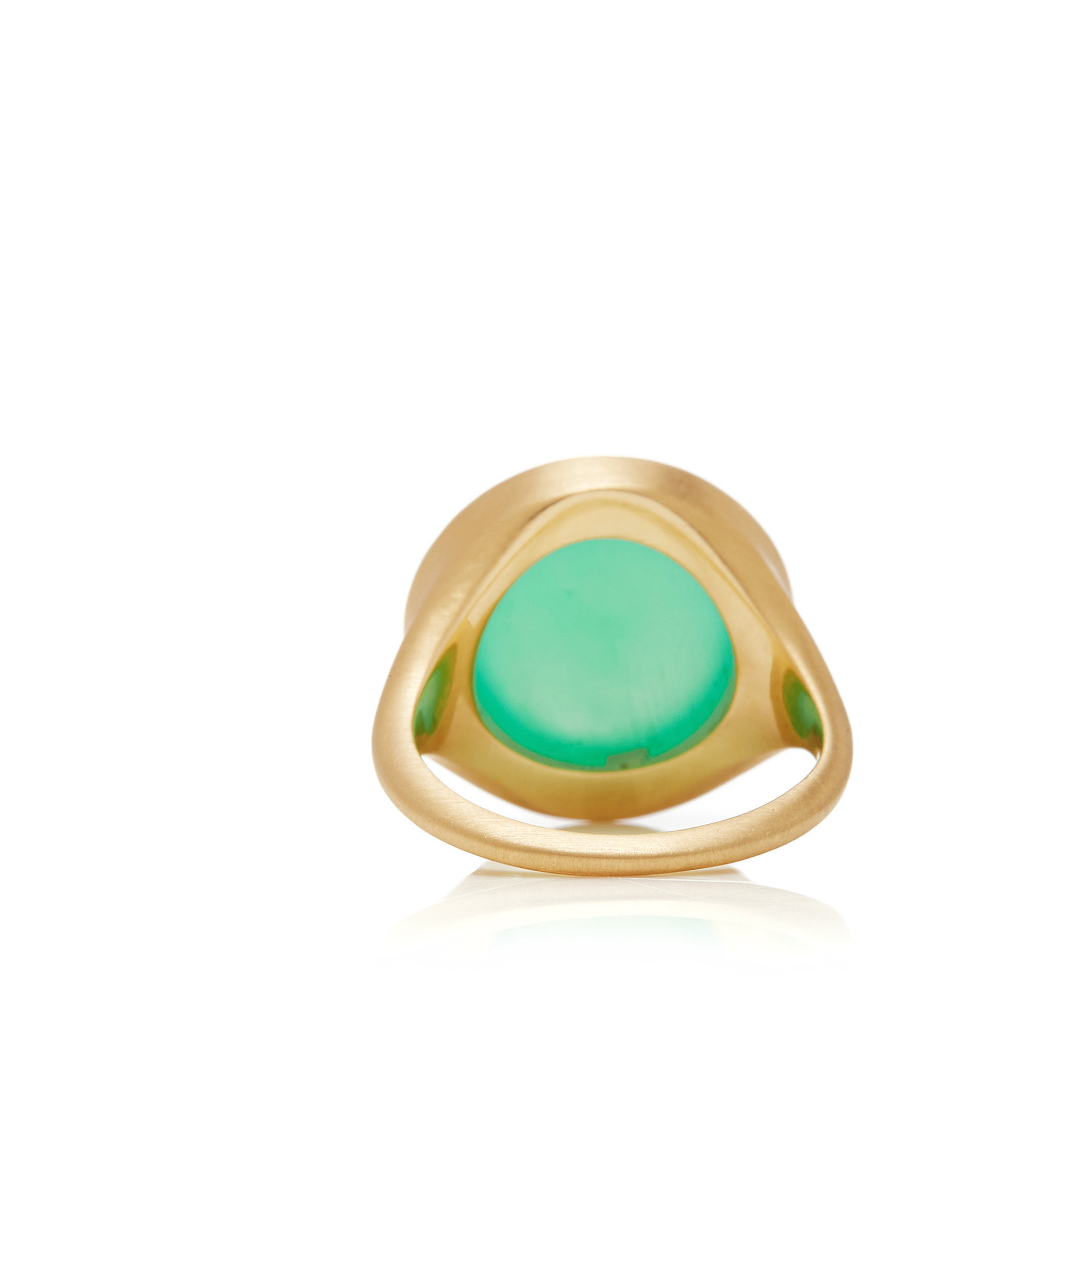 Chrysoprase & Diamond Ring - Round